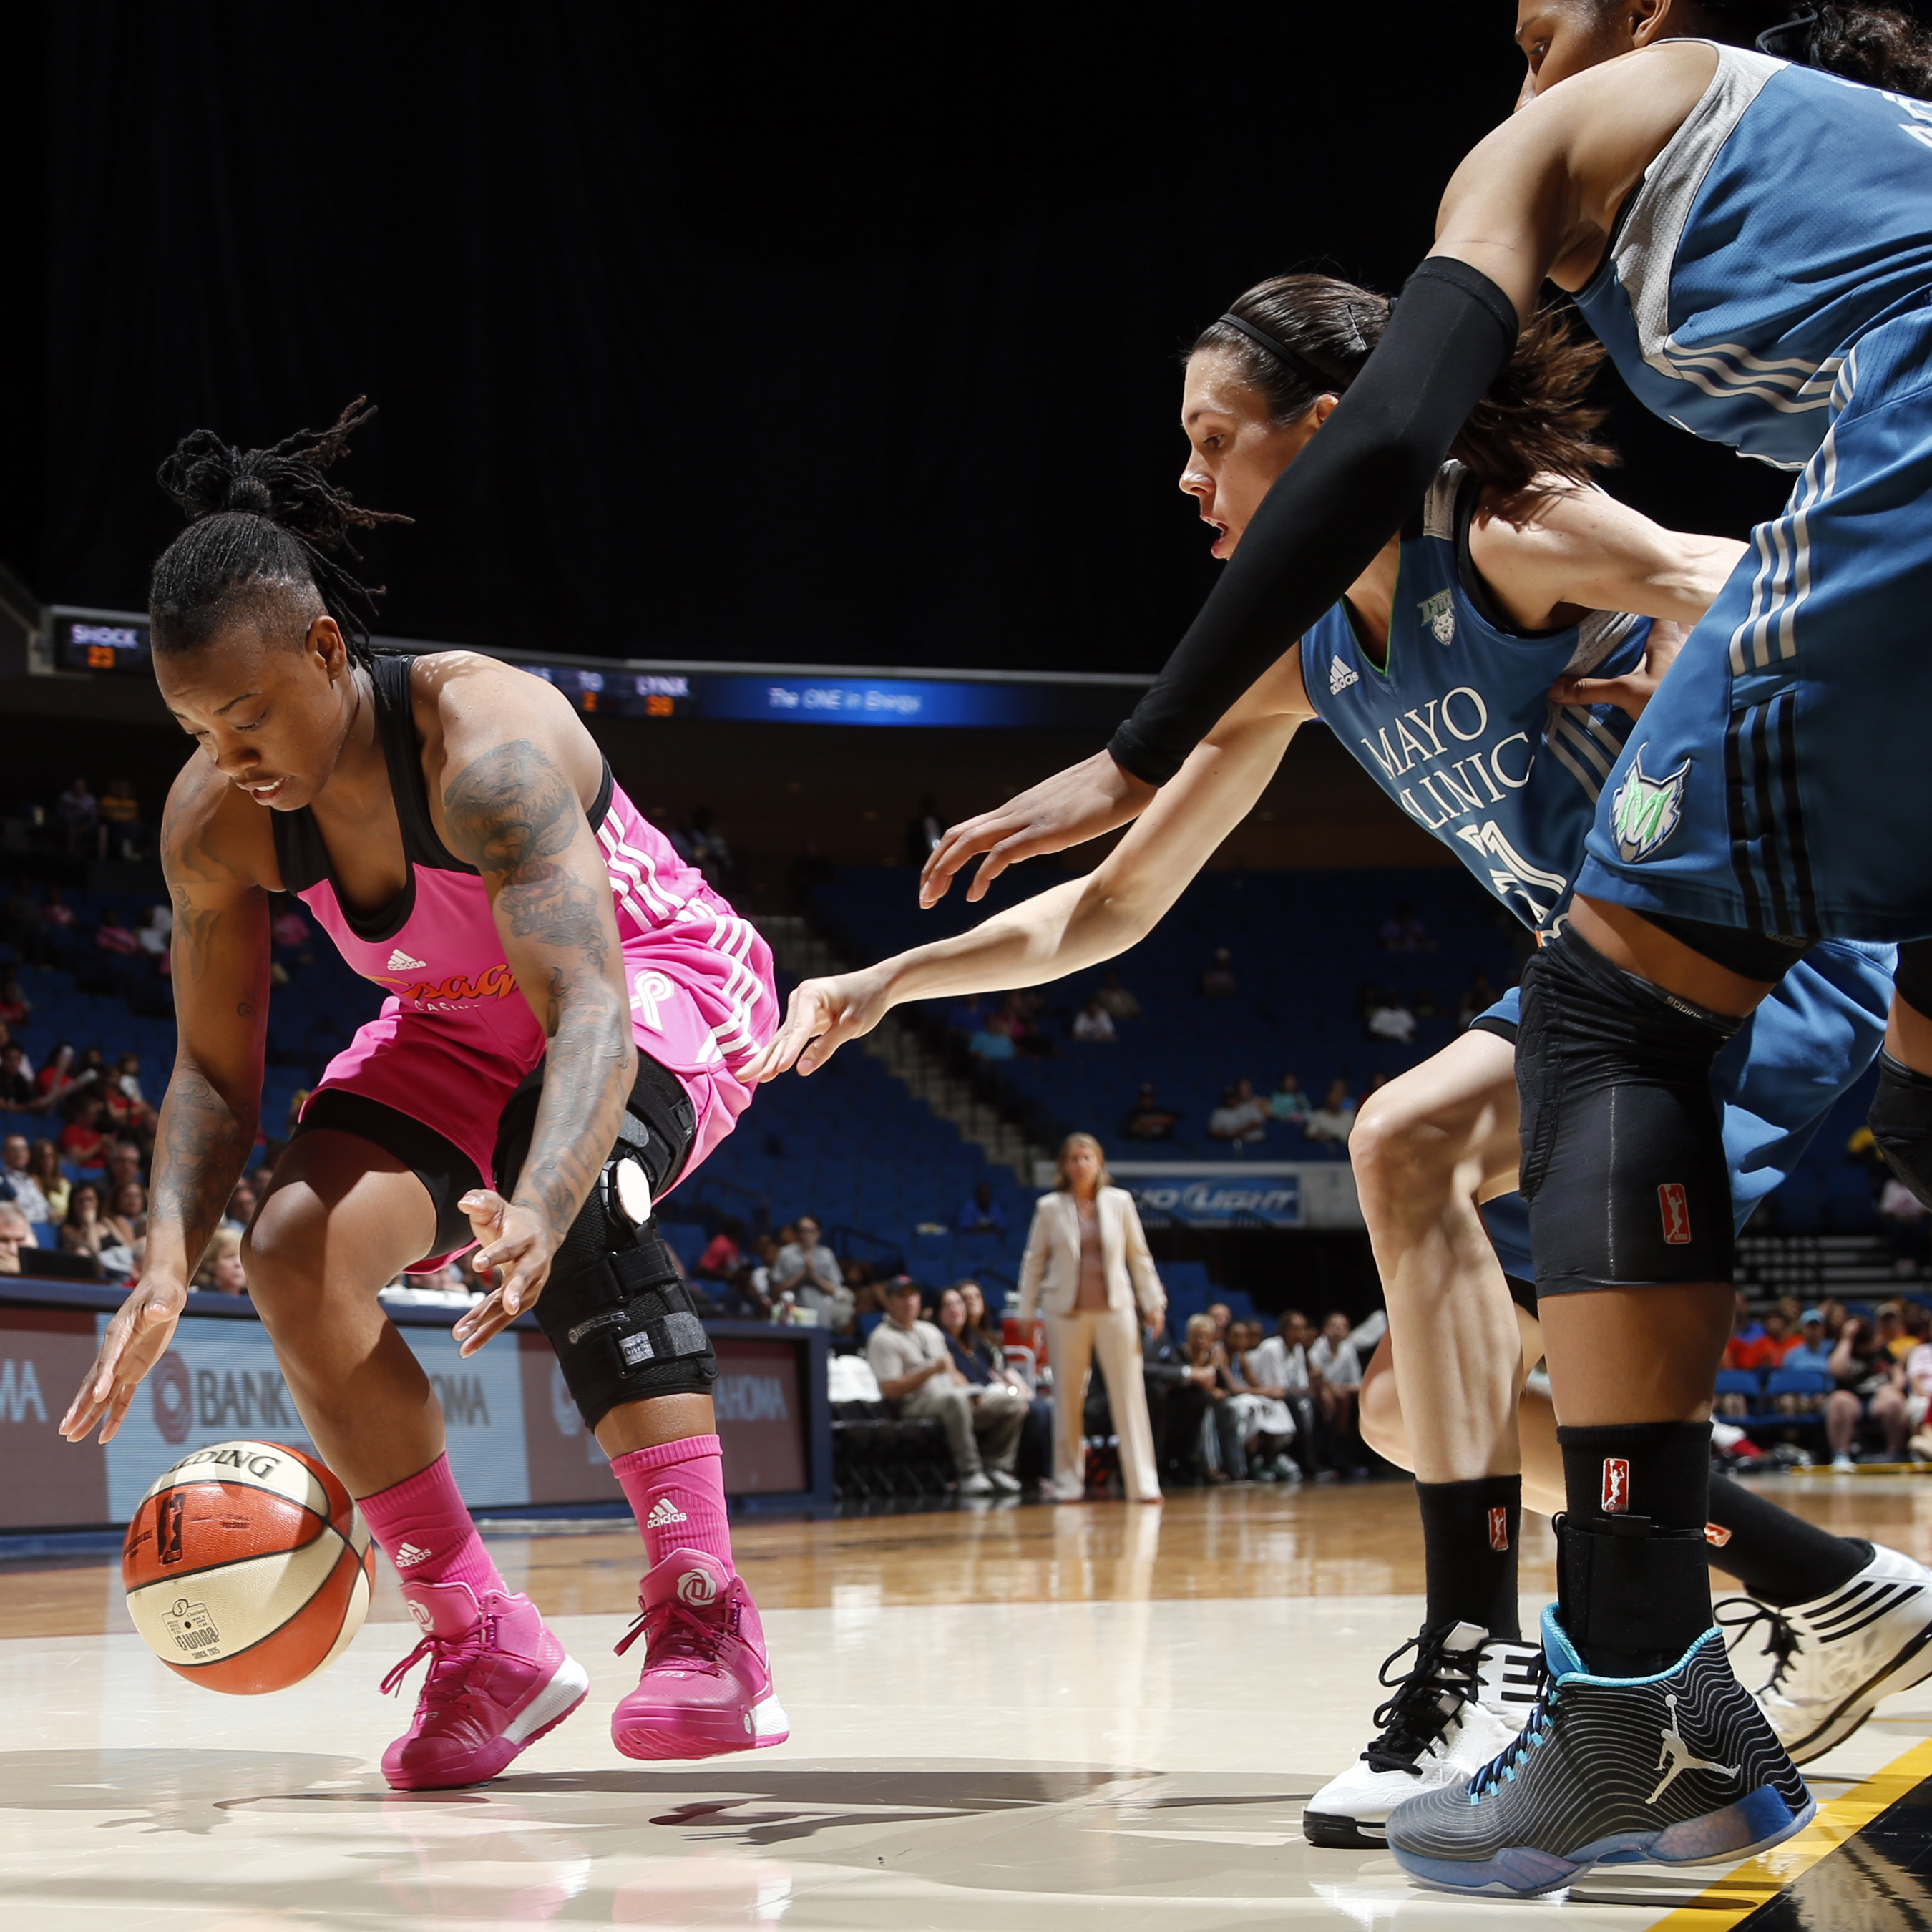 Shock guard Riquna Williams had a fantastic night against the Lynx, pouring in a game-high 35 points on 11-of-23 shooting (48 percent) to go with her two steals and two blocks.